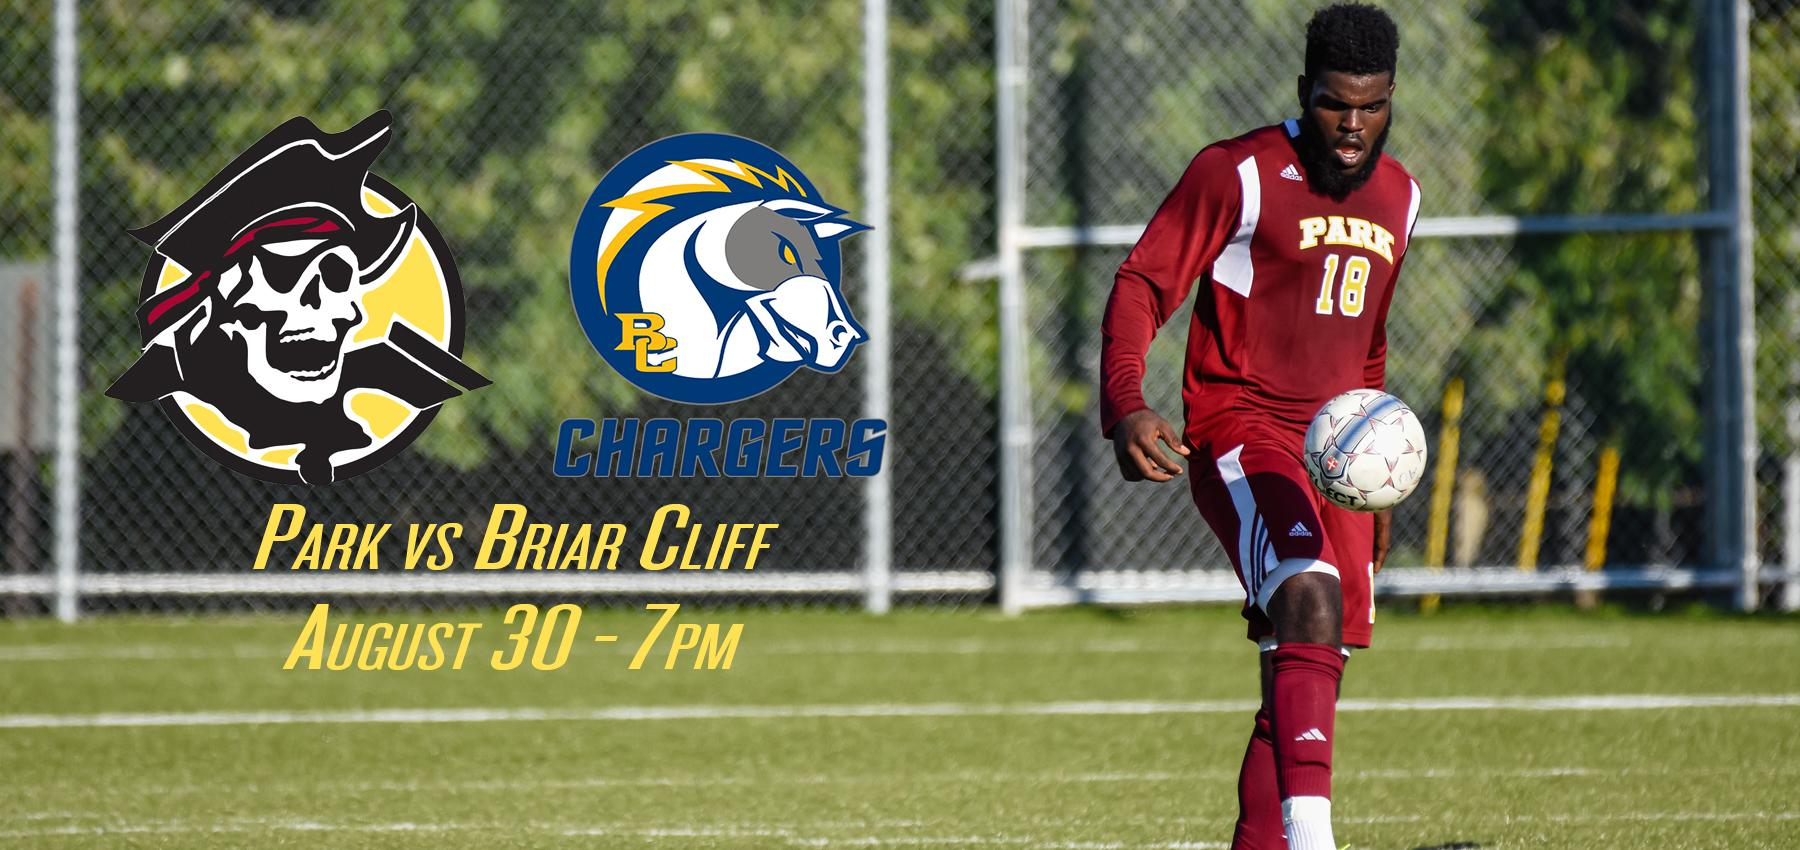 Donovan Morgan and the Pirates host Briar Cliff on Wednesday evening at Julian Field.